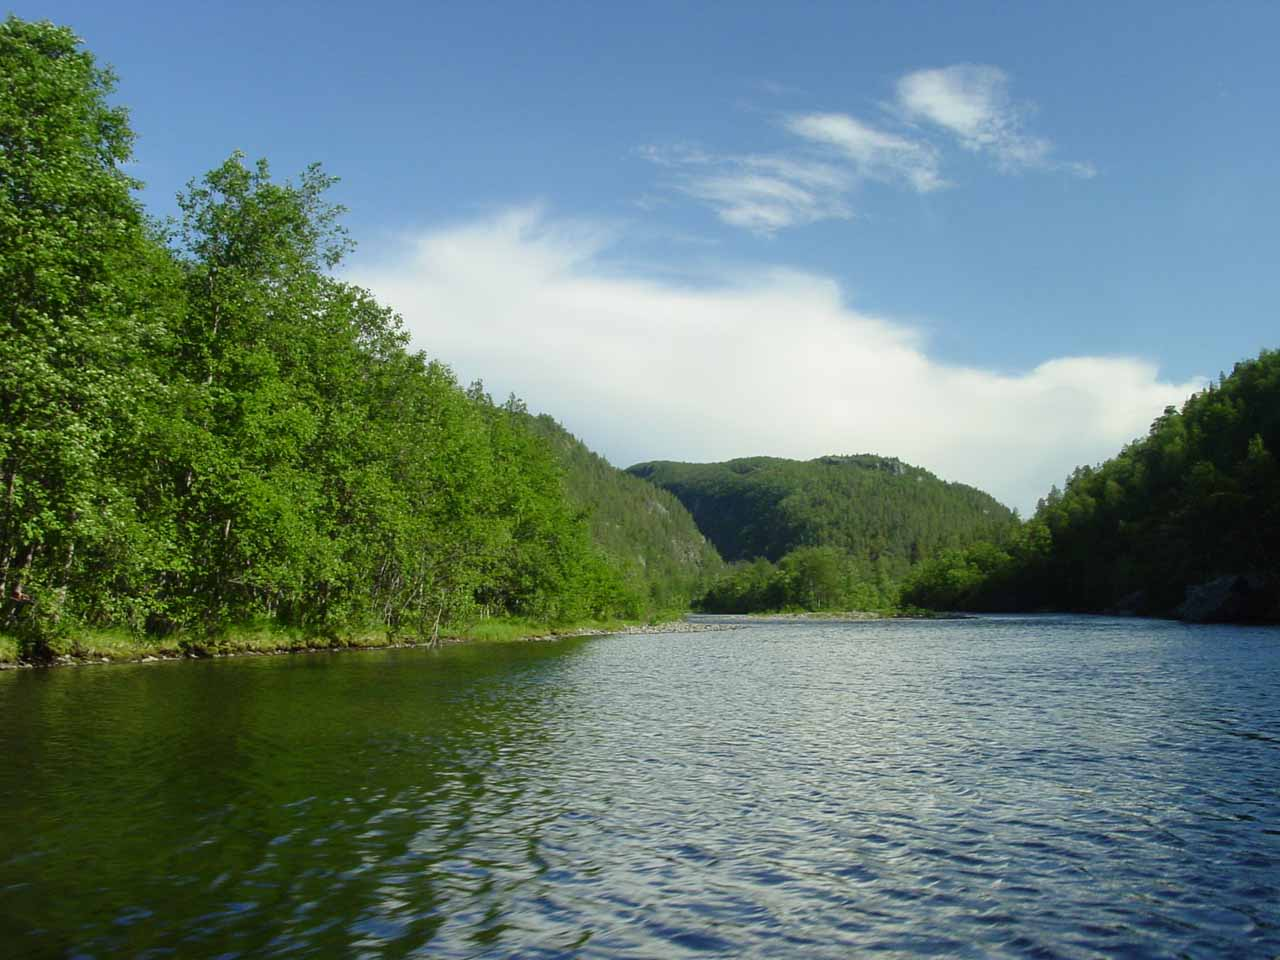 Continuing further up the scenic Reisaelva River in Reisa National Park